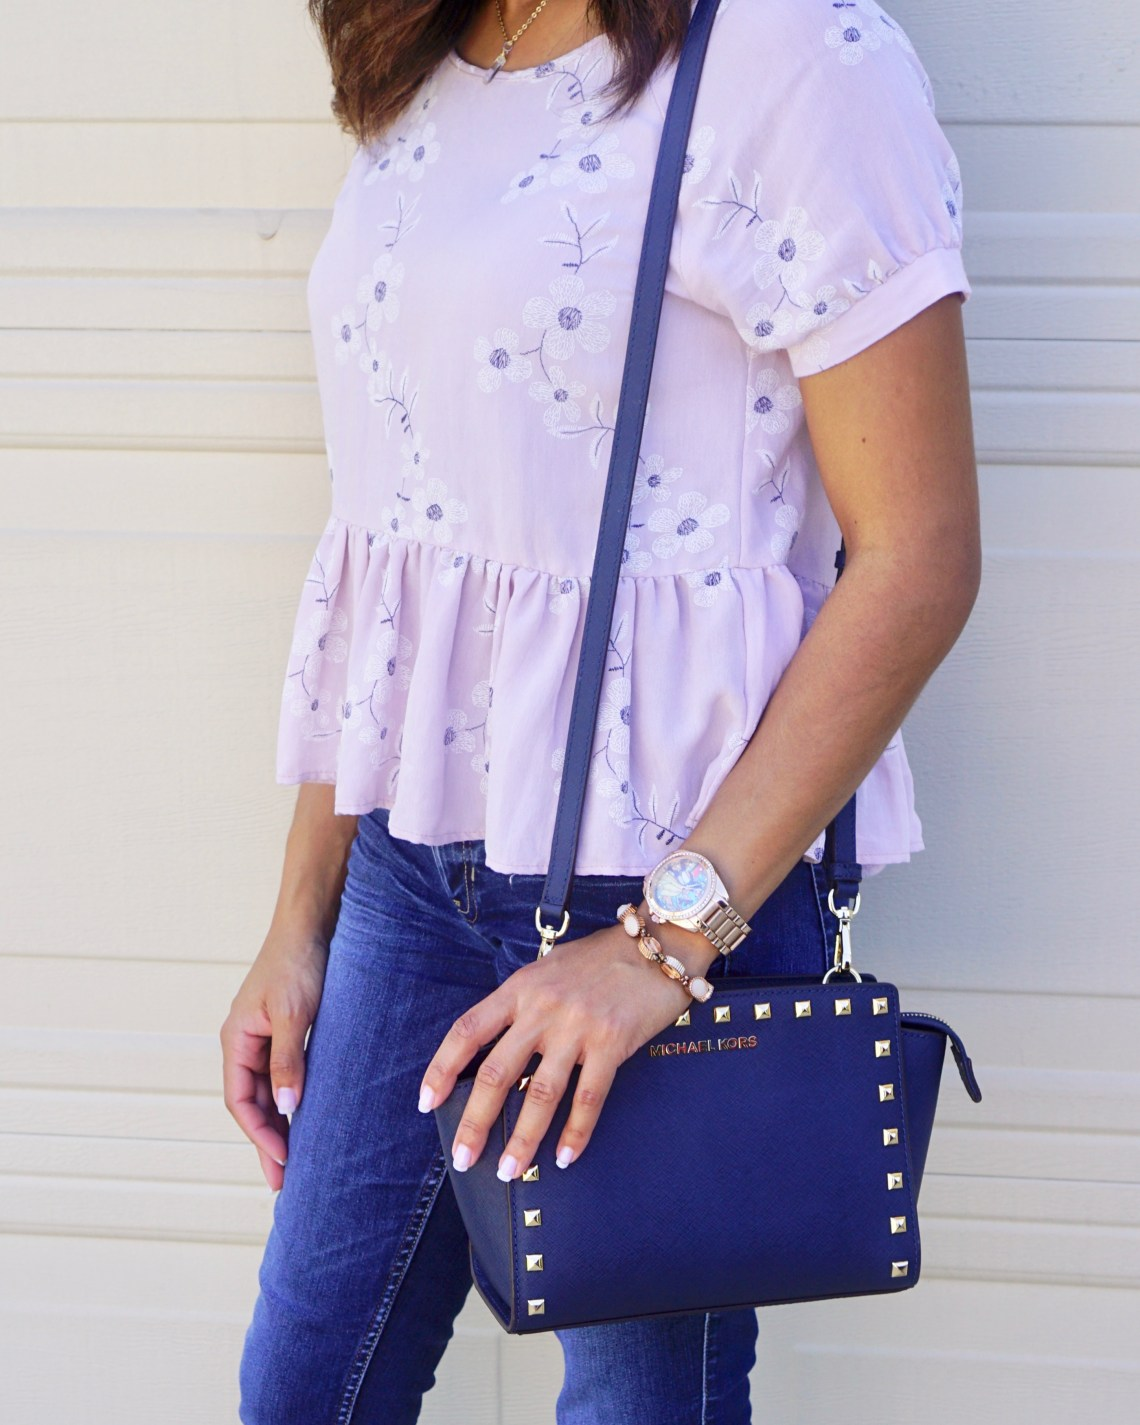 Fall Floral Trend